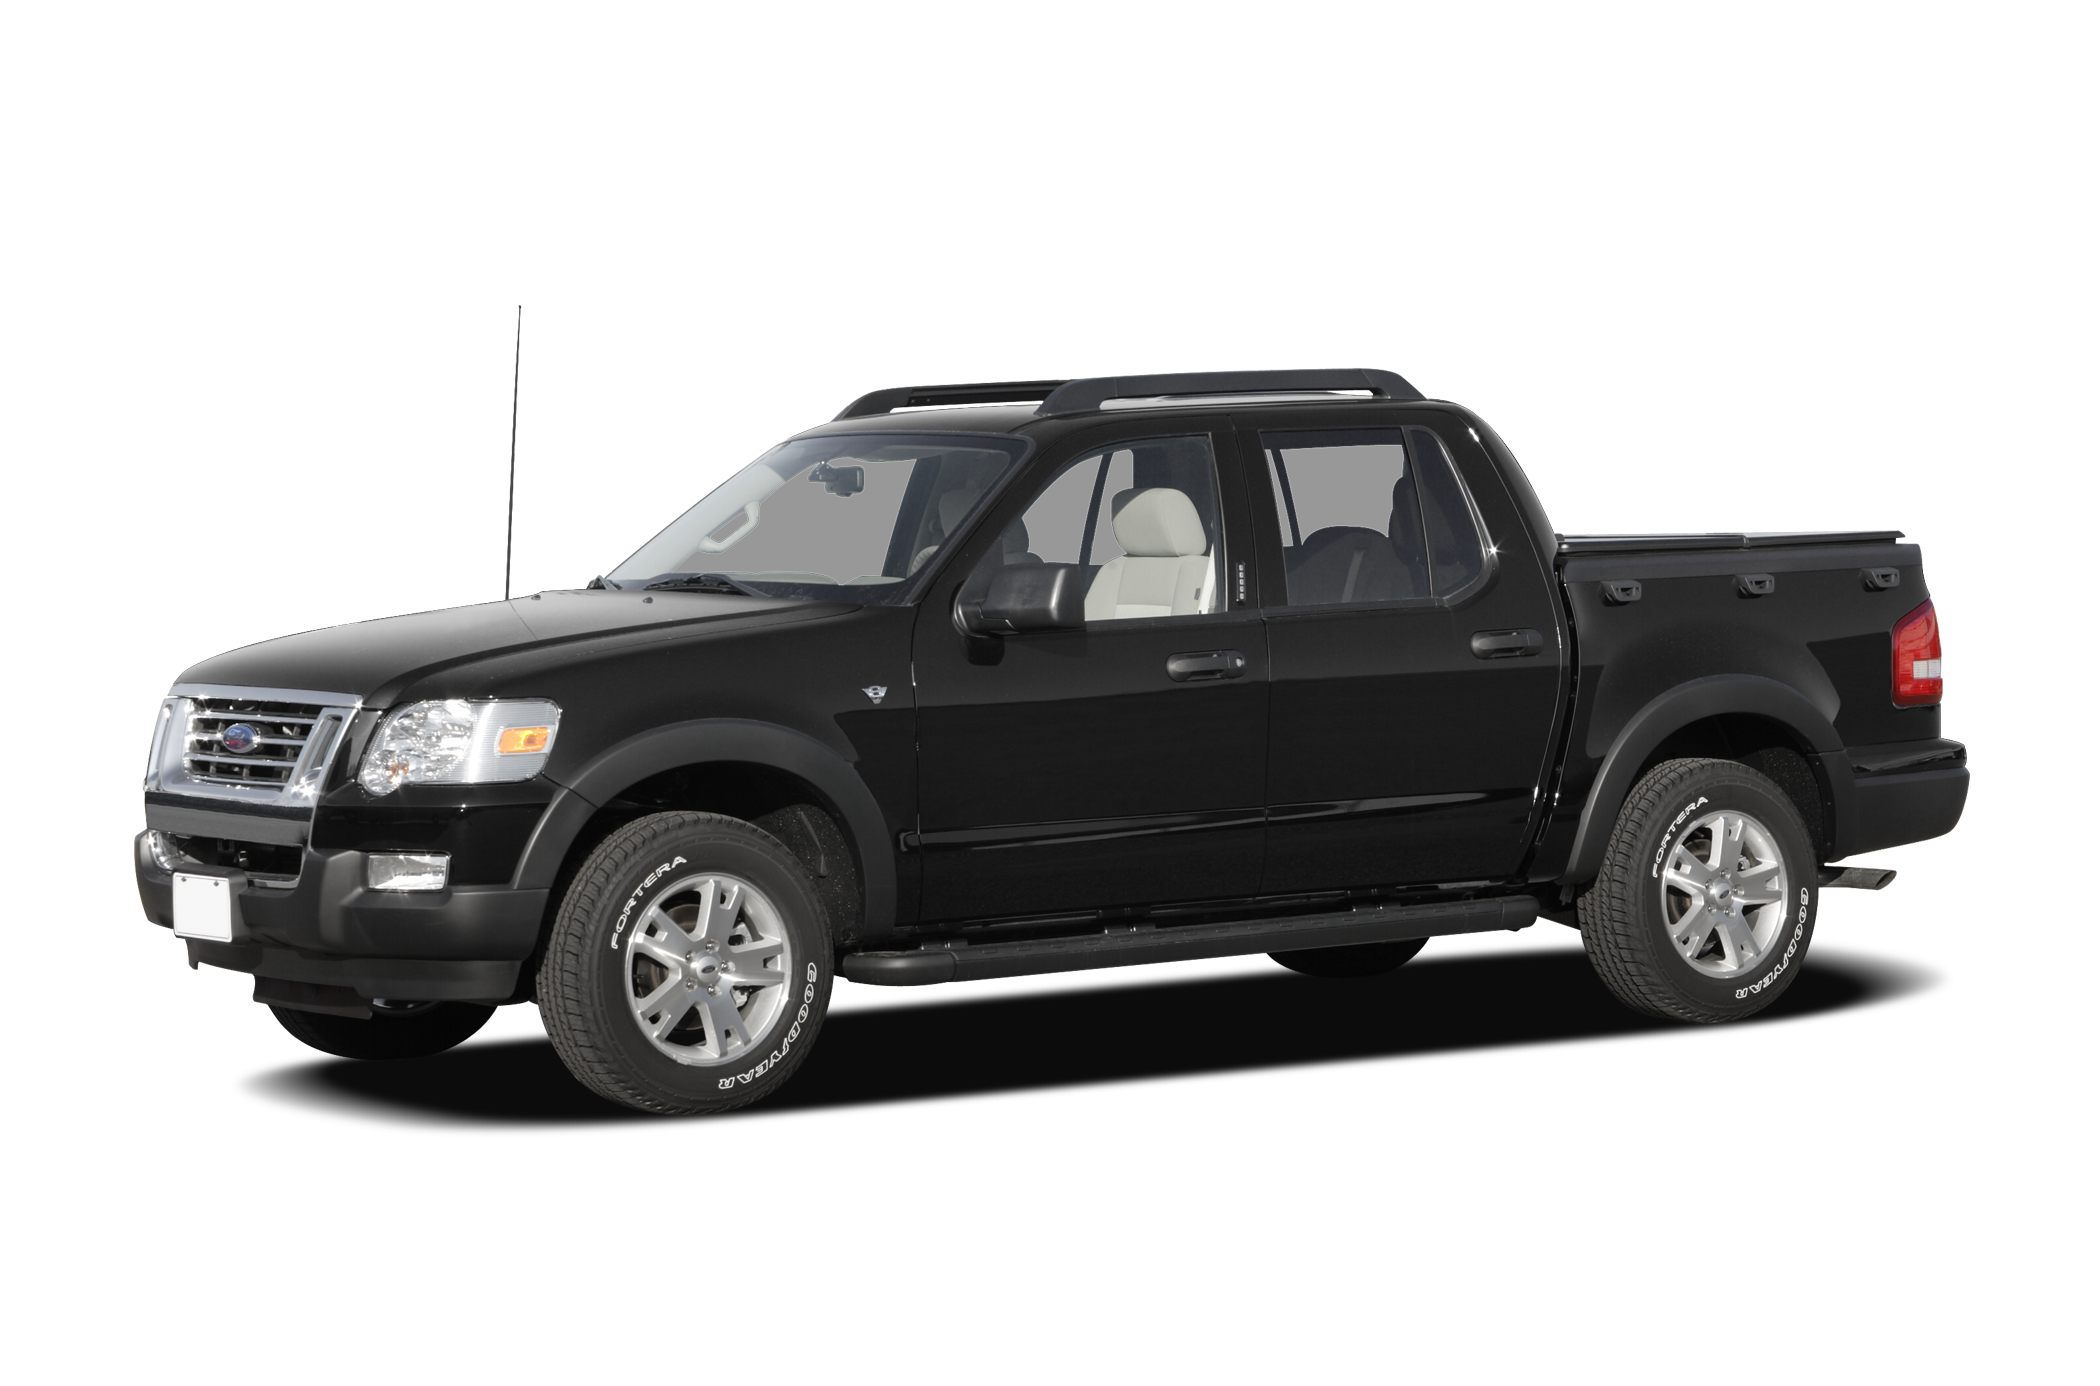 2008 Ford Explorer Sport Trac Limited Crew Cab Pickup for sale in Huntington for $22,000 with 63,545 miles